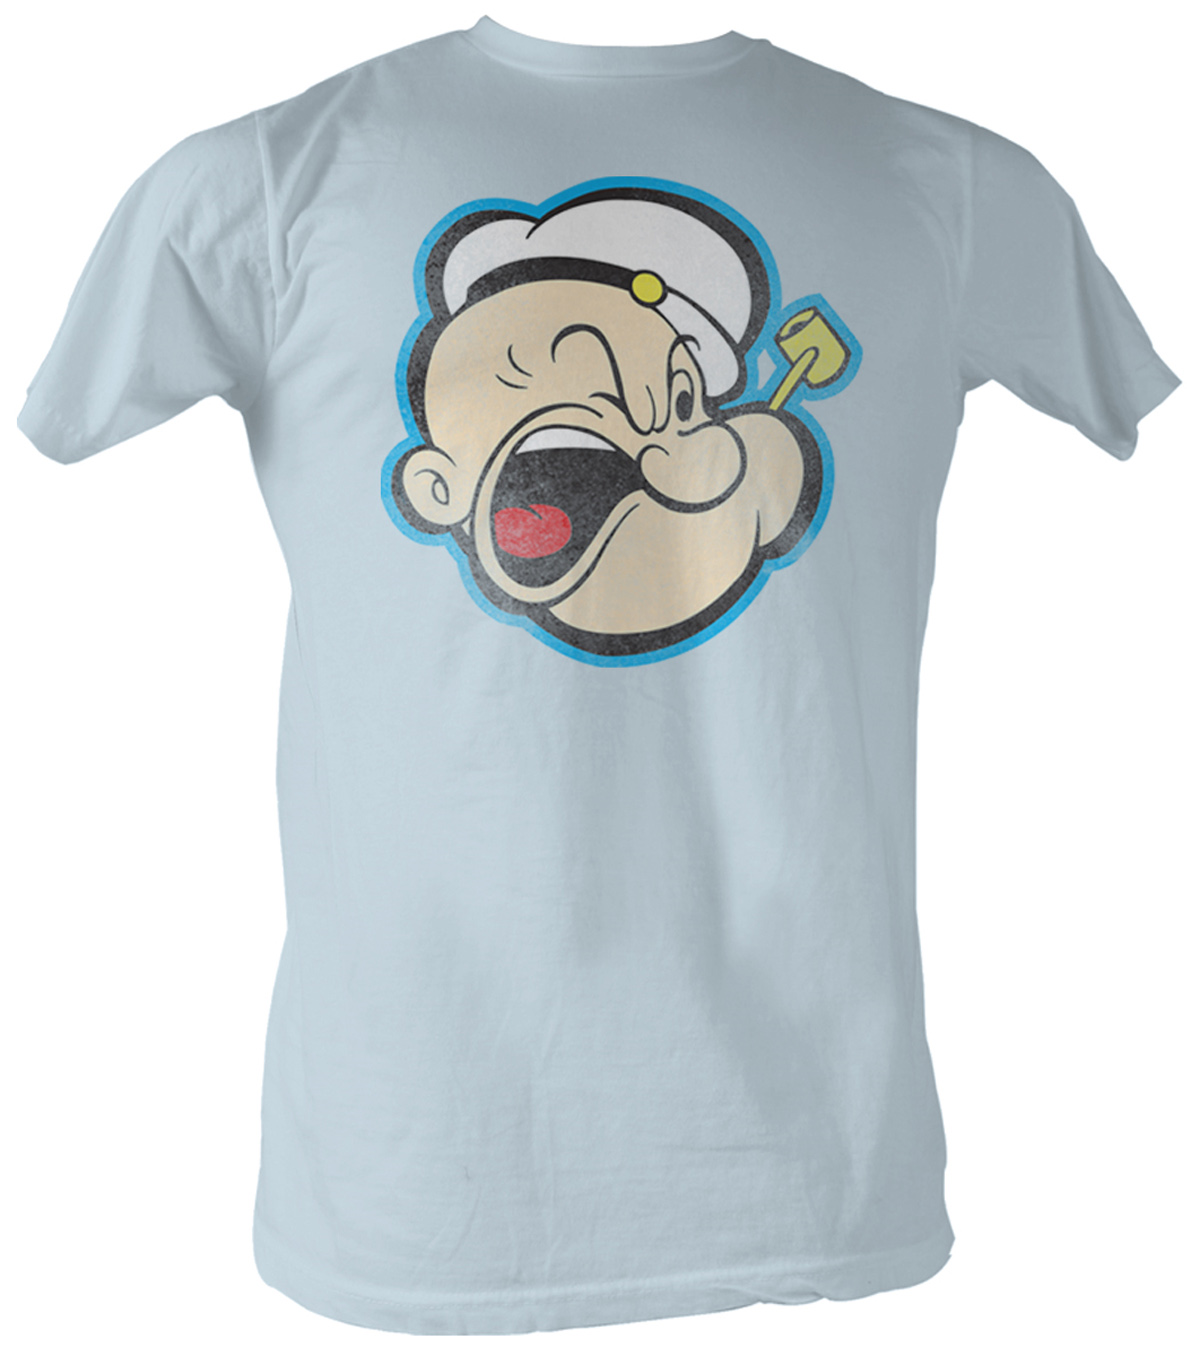 popeye t shirt the sailorman head 2 adult light blue tee. Black Bedroom Furniture Sets. Home Design Ideas